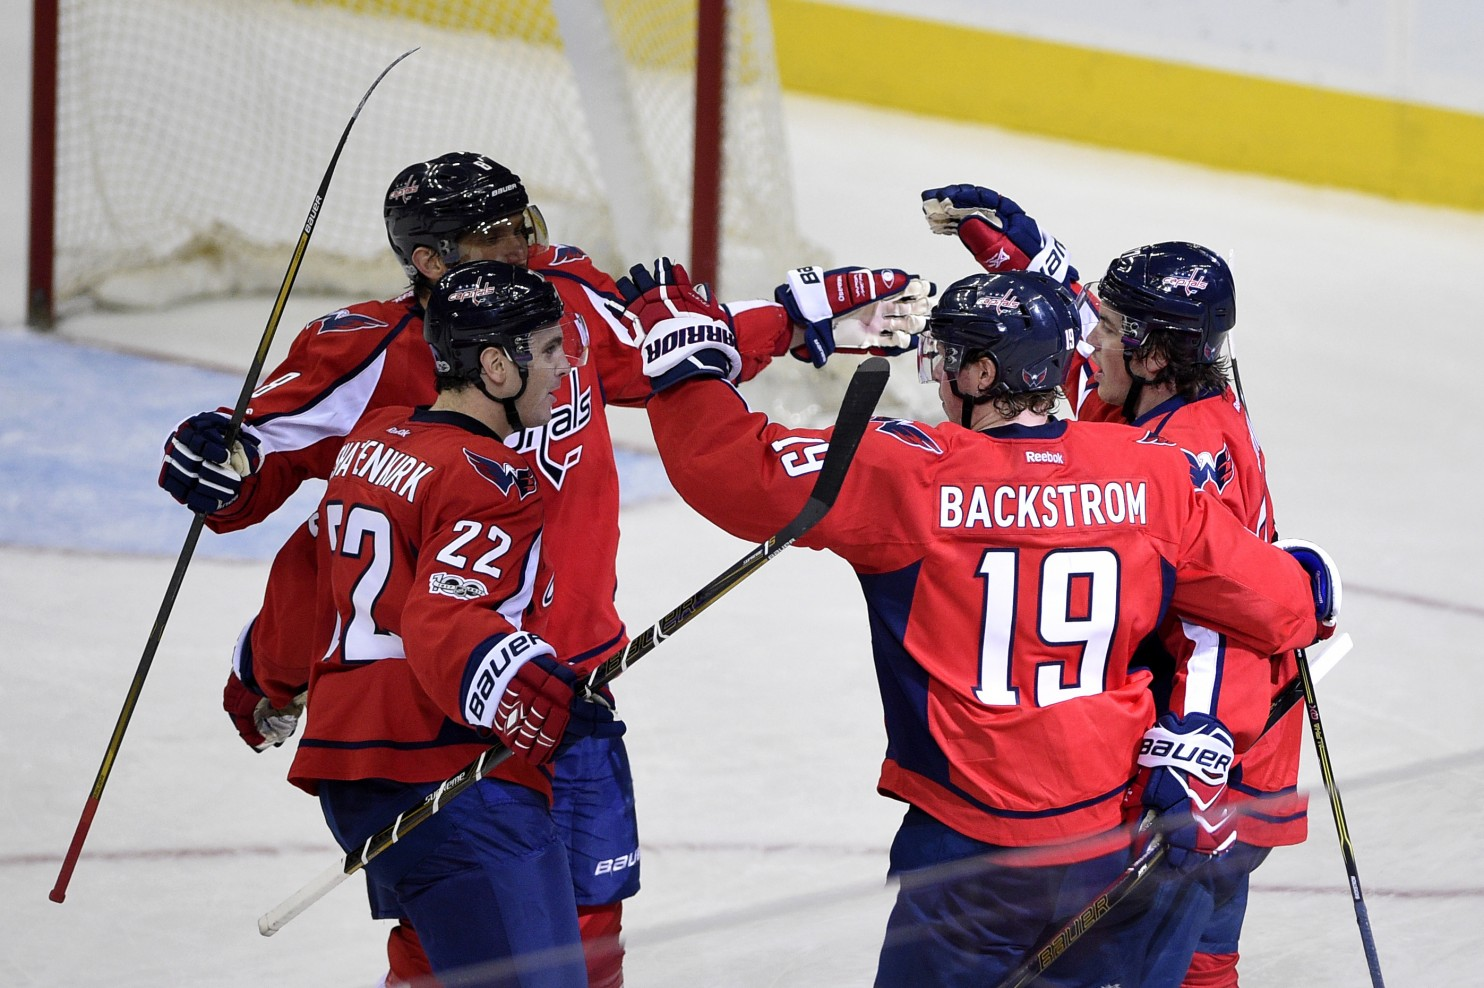 Capitals Trade for All Star, Go All-in for Stanley Cup Run